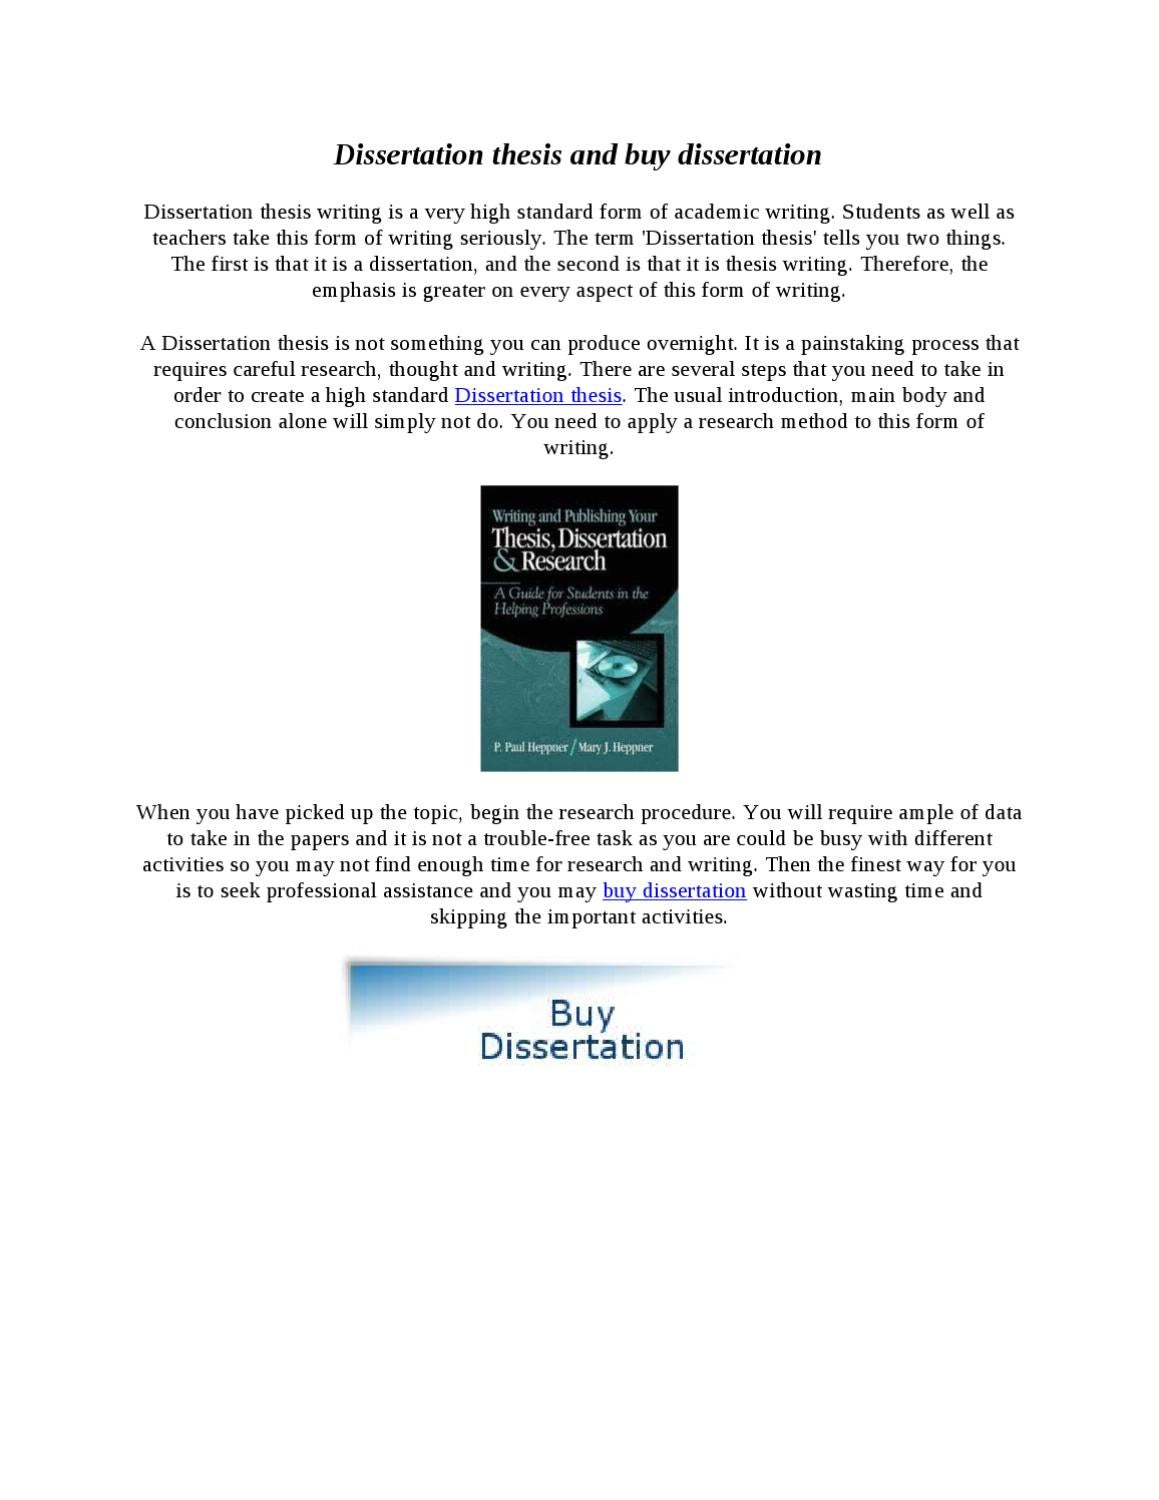 Buy professional dissertation professional annotated bibliography ghostwriter websites